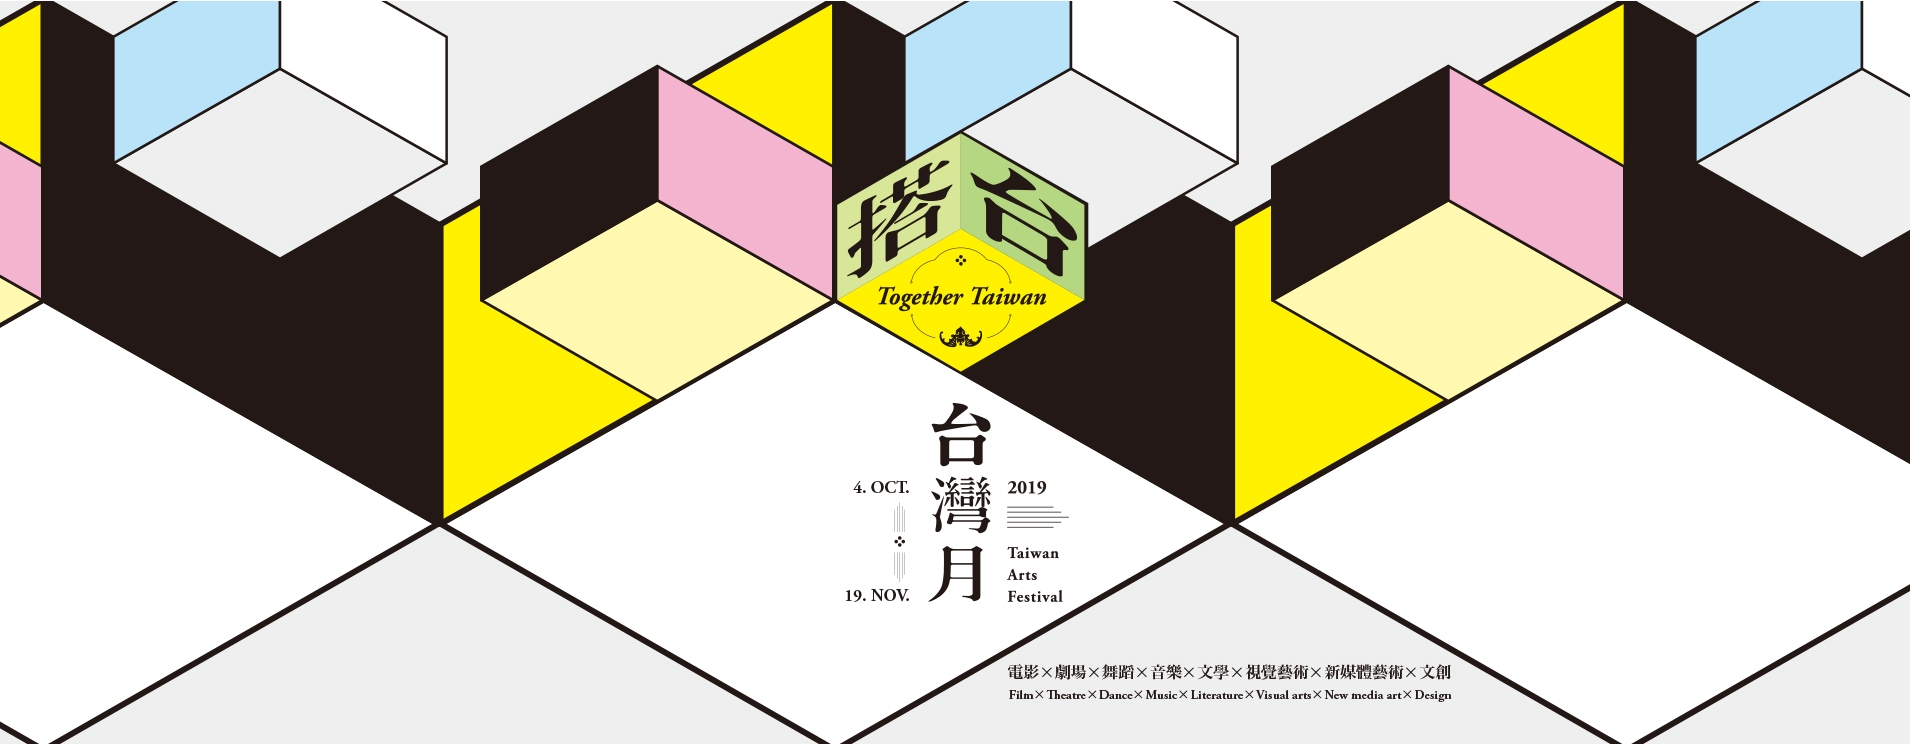 14th Taiwan Arts Festival in Hong Kong[另開新視窗]